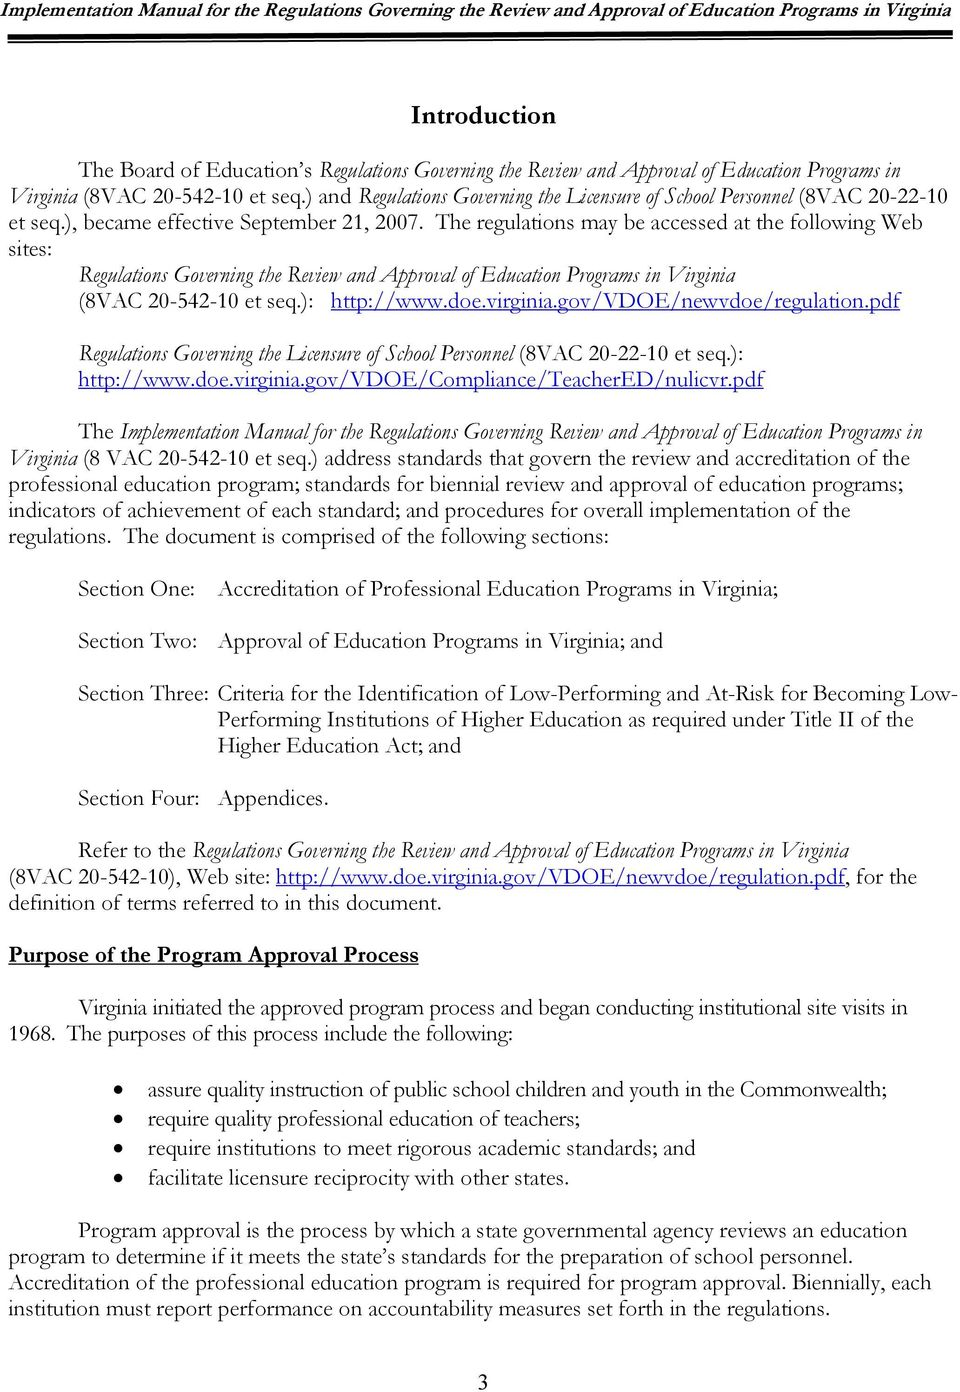 The regulations may be accessed at the following Web sites: Regulations Governing the Review and Approval of Education Programs in Virginia (8VAC 20-542-10 et seq.): http://www.doe.virginia.